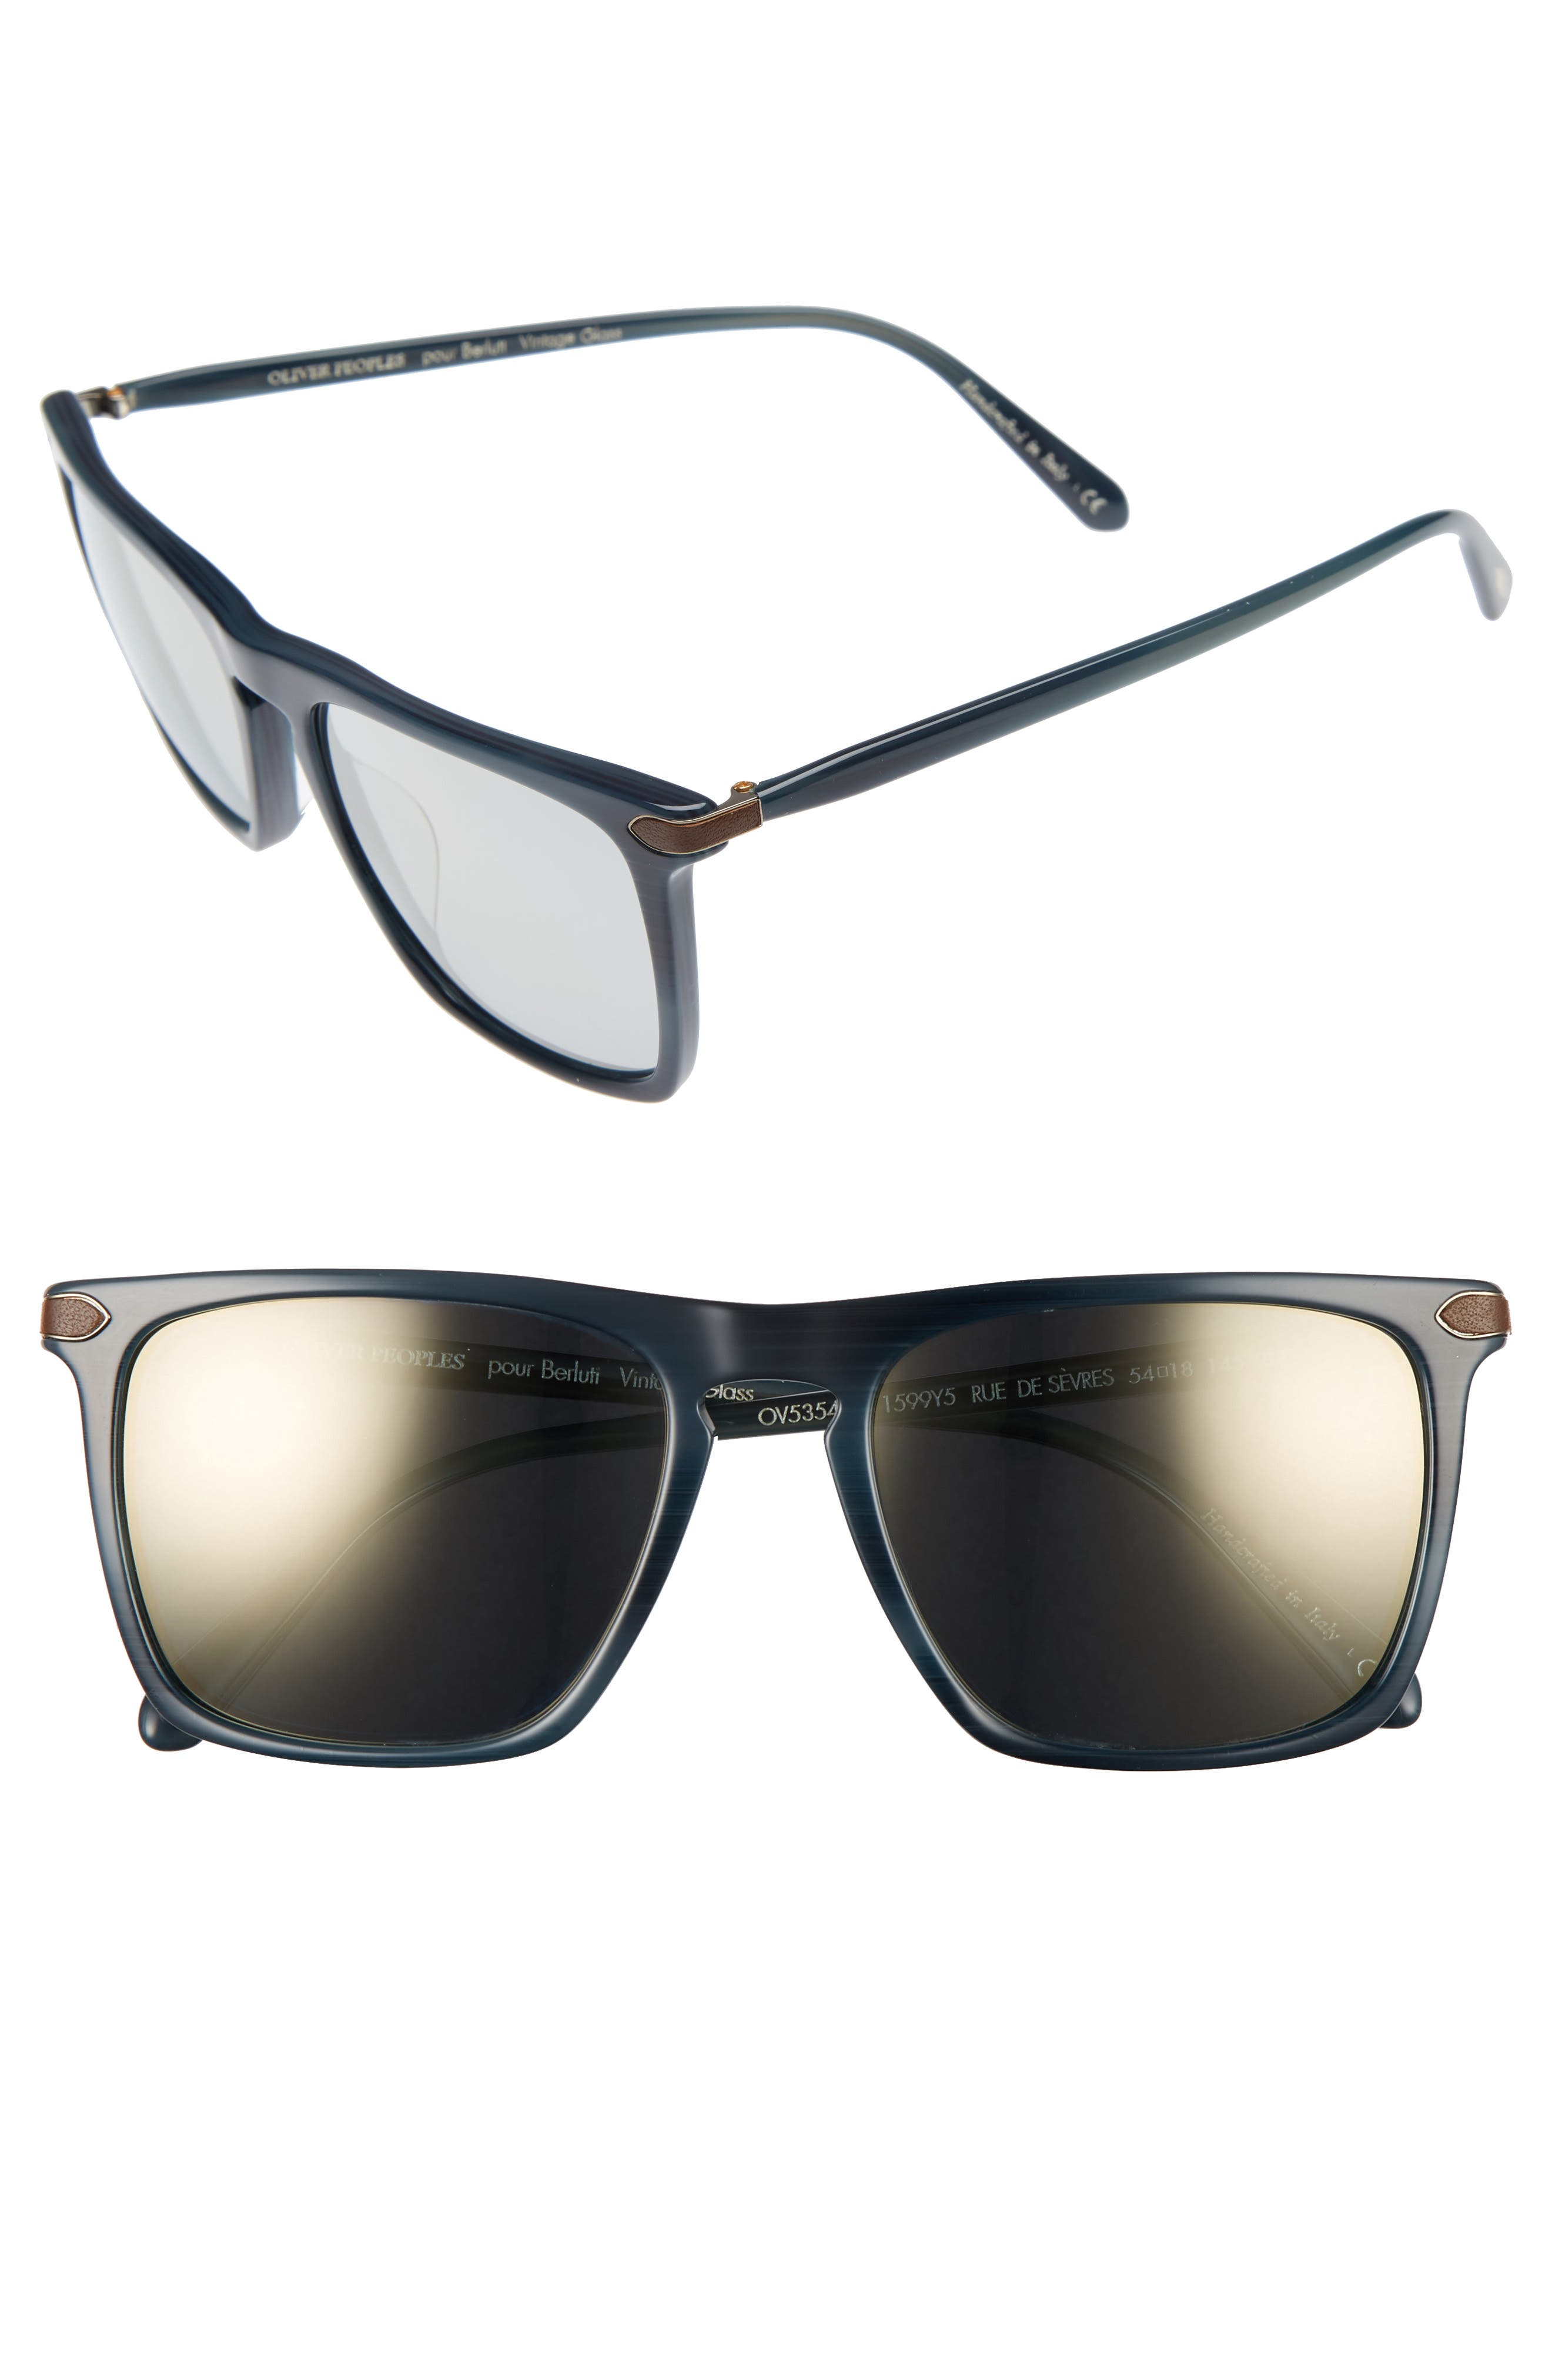 Main Image - Oliver Peoples Rue De Sevres 54mm Polarized Sunglasses